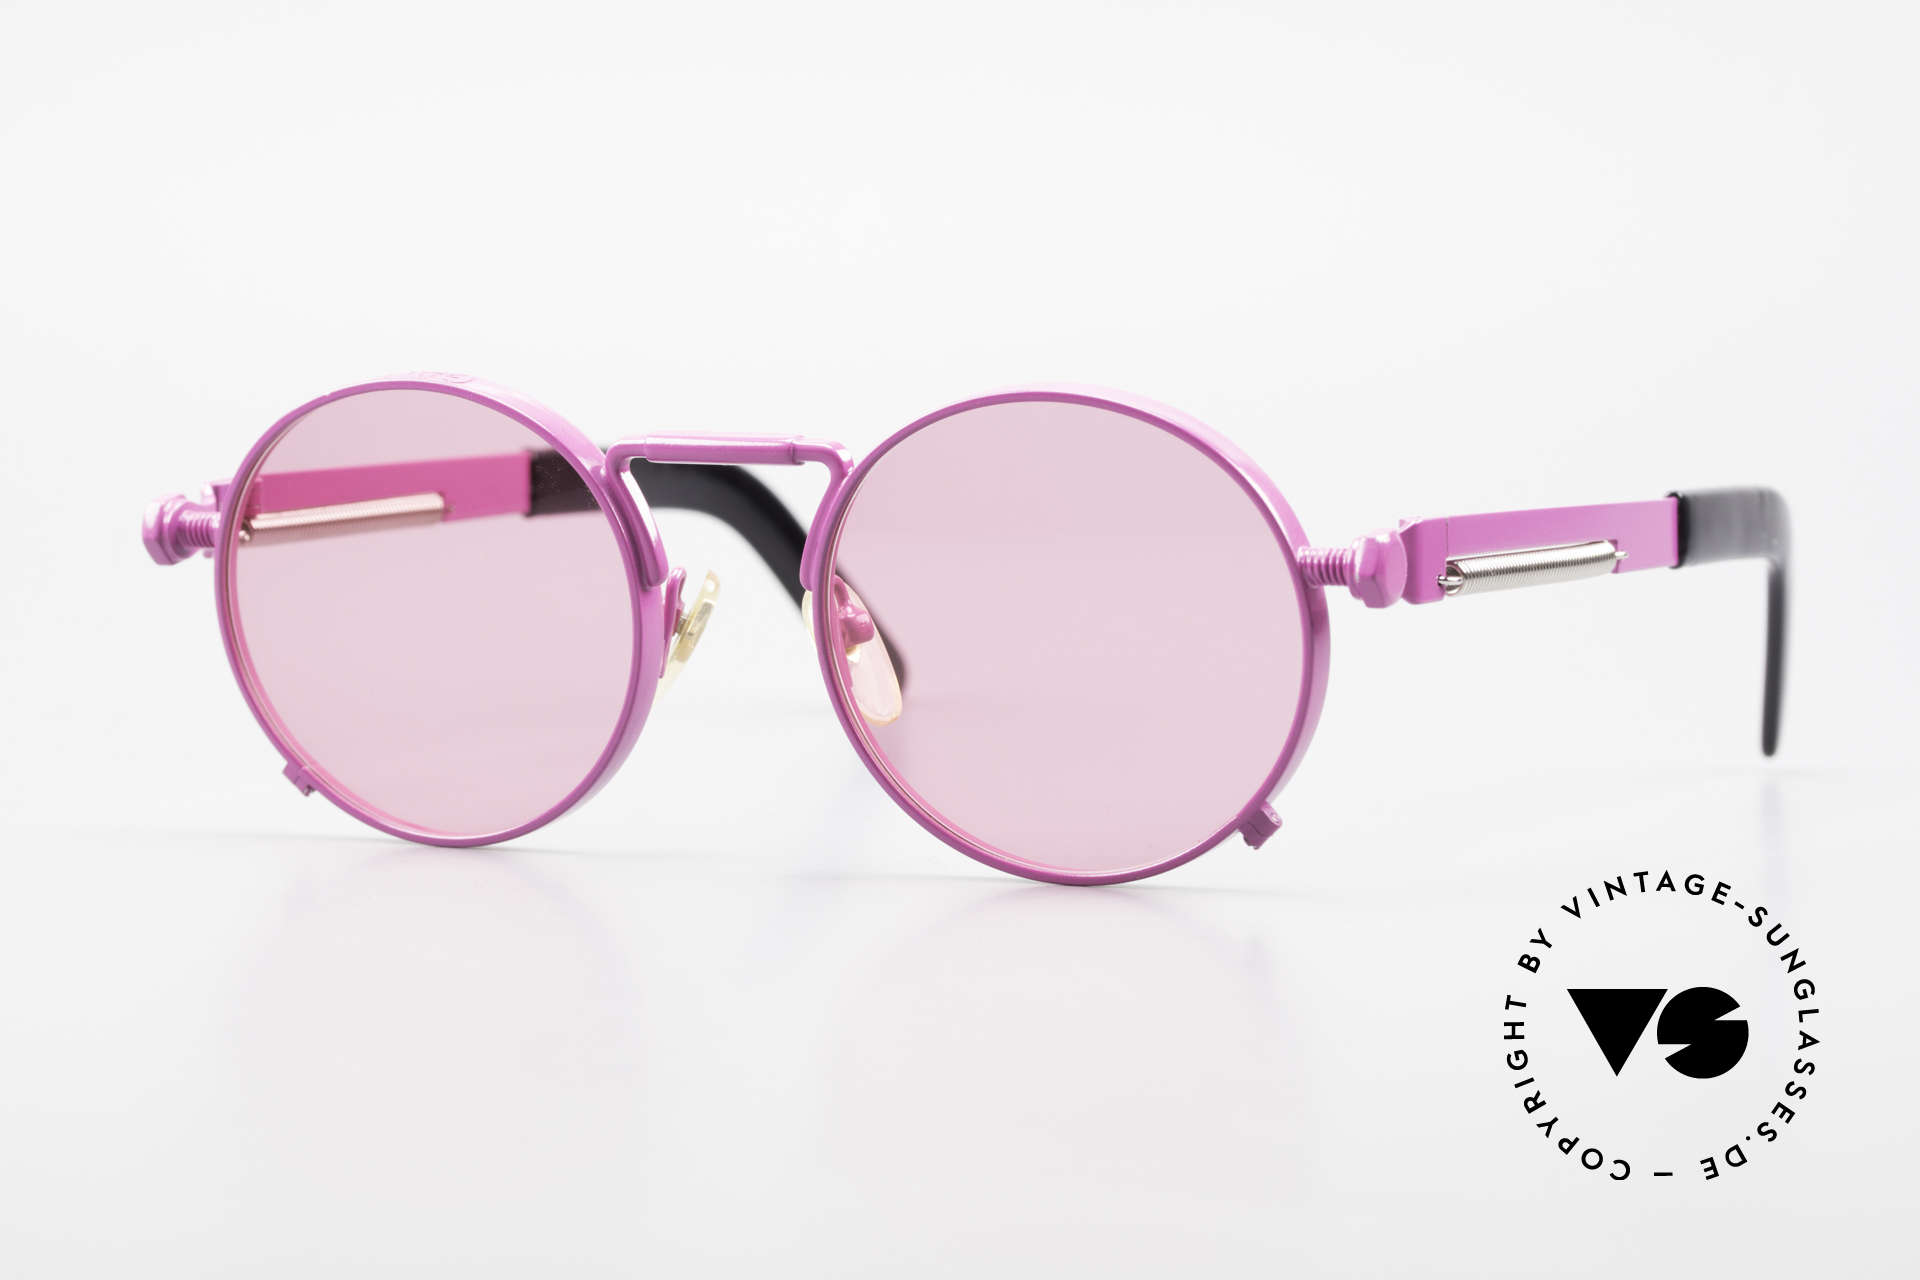 Jean Paul Gaultier 56-8171 Customized Pink Edition, valuable and creative Jean Paul Gaultier designer shades, Made for Men and Women